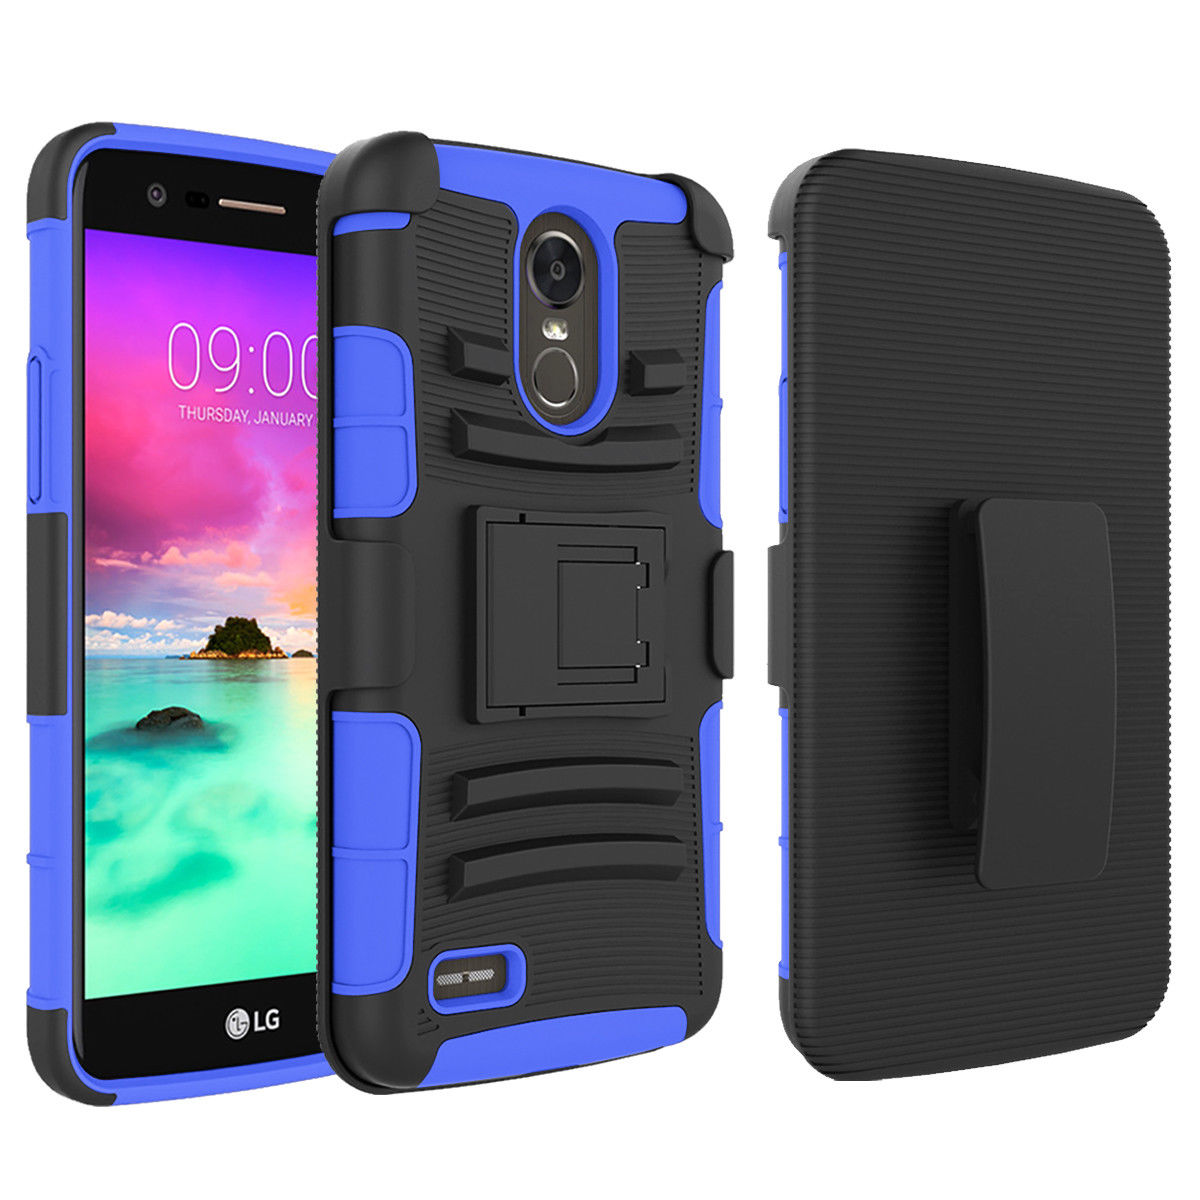 timeless design 2c068 703a4 LG Stylo 3 Case, Mignova Rugged Plastic Heavy Duty Armor Holster Defender  Full Body Protective Hybrid Case Cover with Kickstand and Belt Swivel Clip  ...